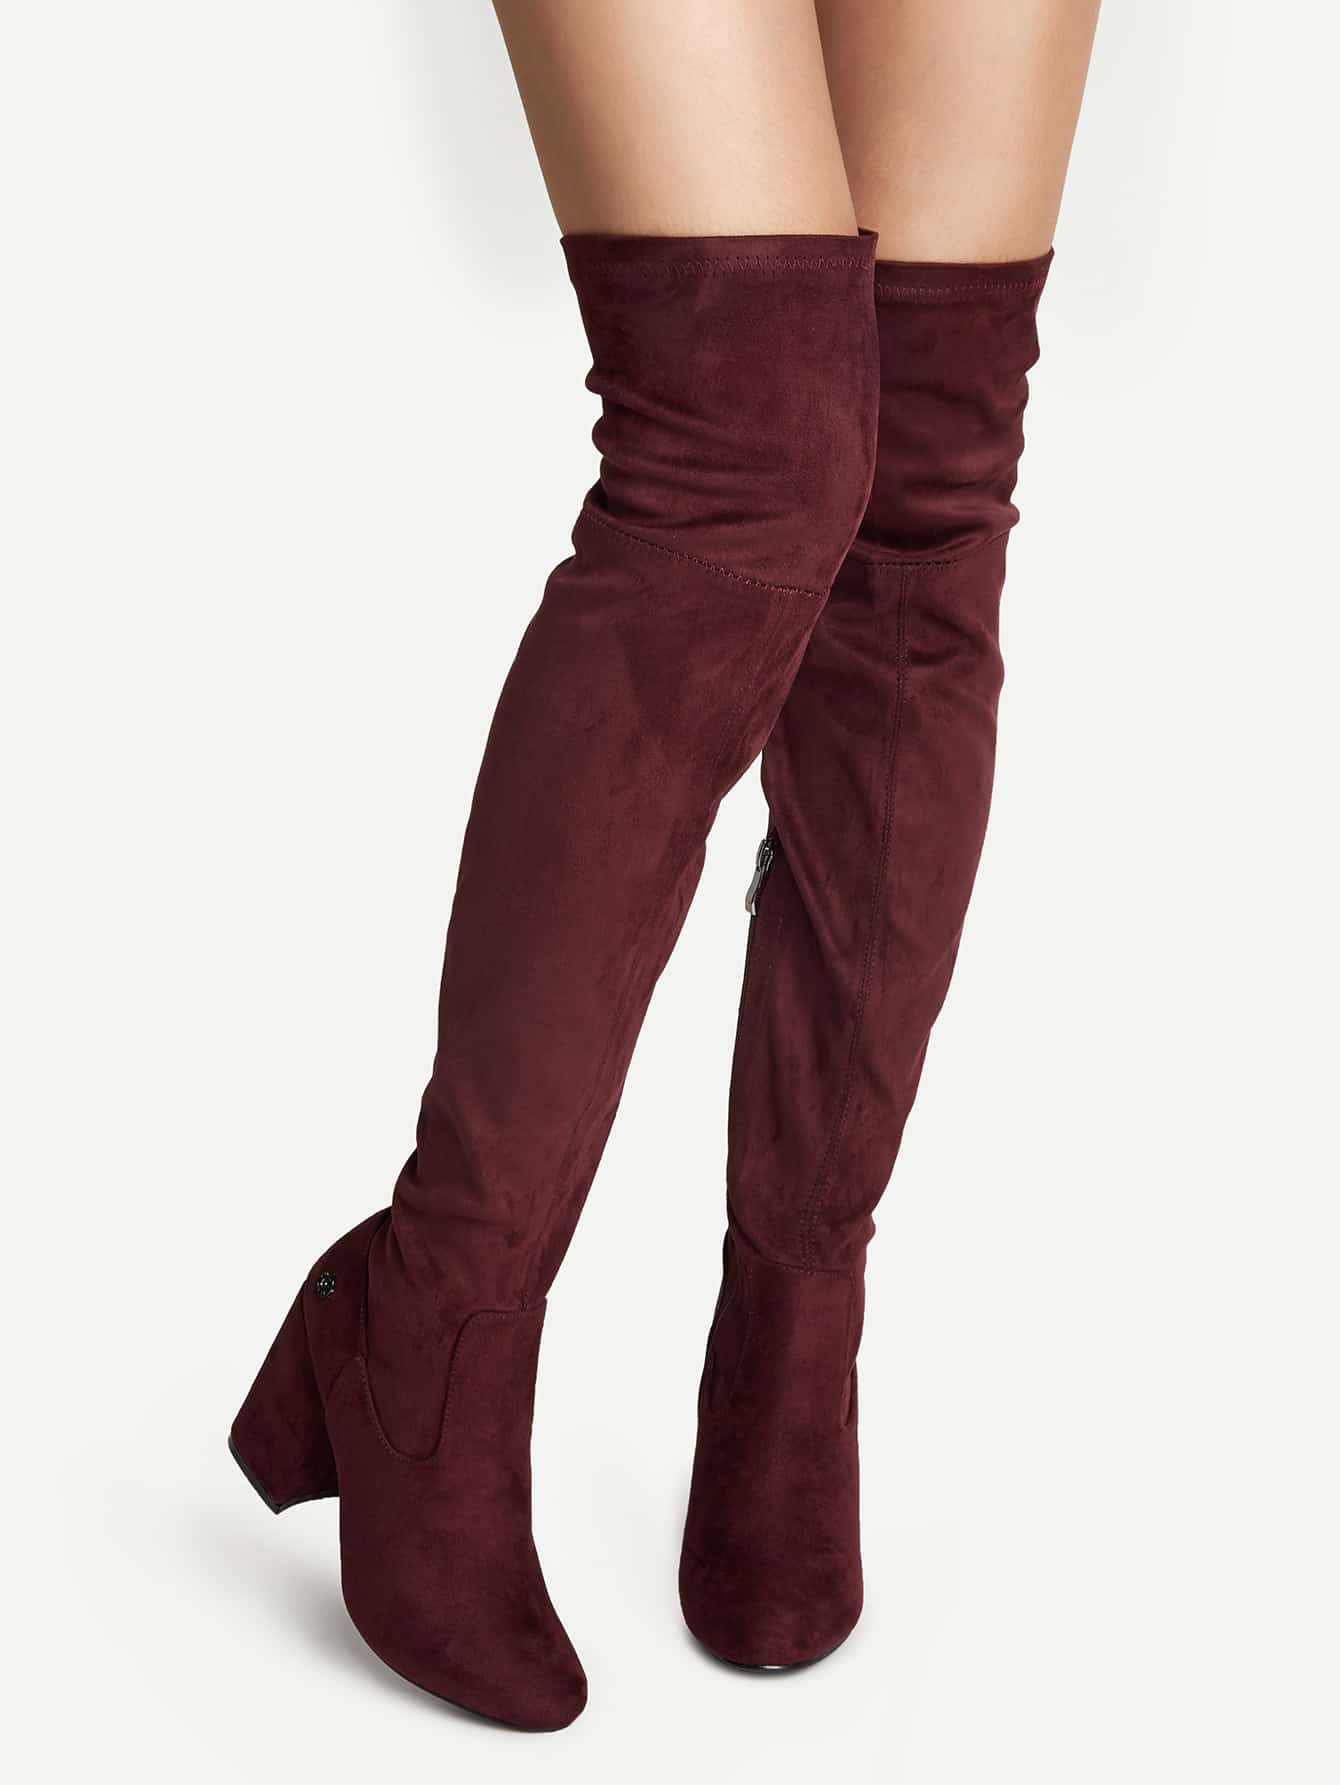 Burgundy Faux Suede Point Toe Over The Knee Boots shoes16082404